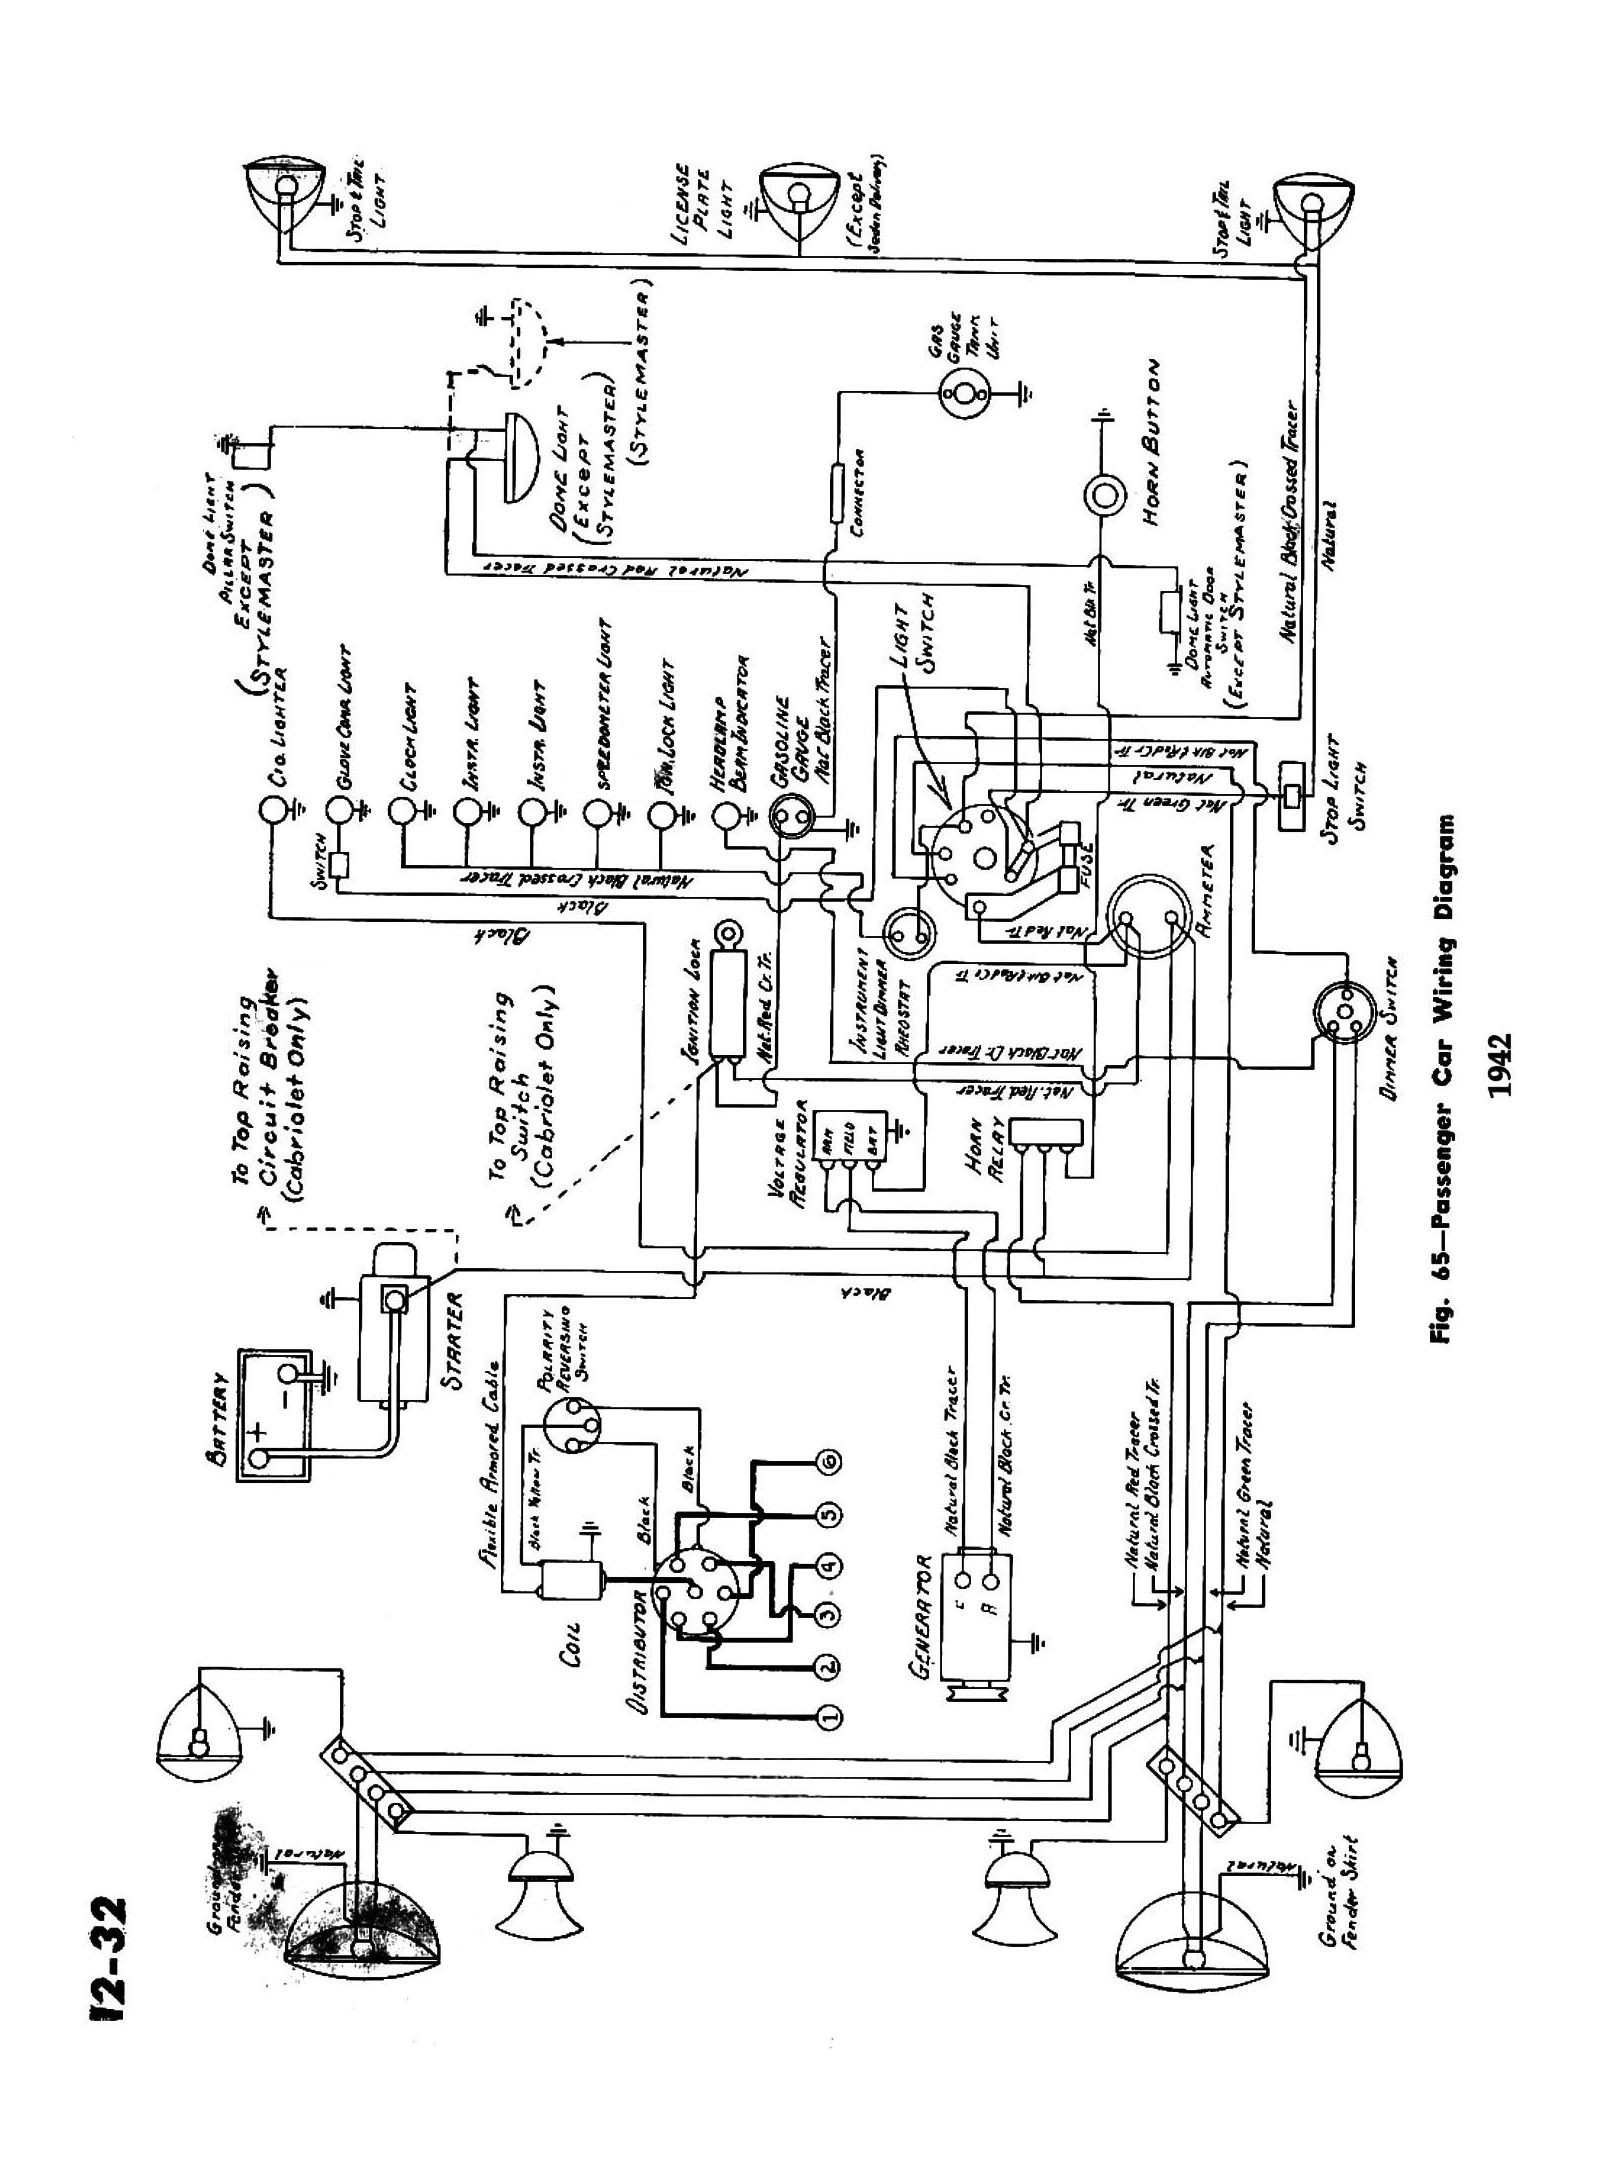 chevy wiring diagrams rh chevy oldcarmanualproject com 2000 Oldsmobile Intrigue Engine Diagram 2000 Oldsmobile Intrigue Engine Diagram